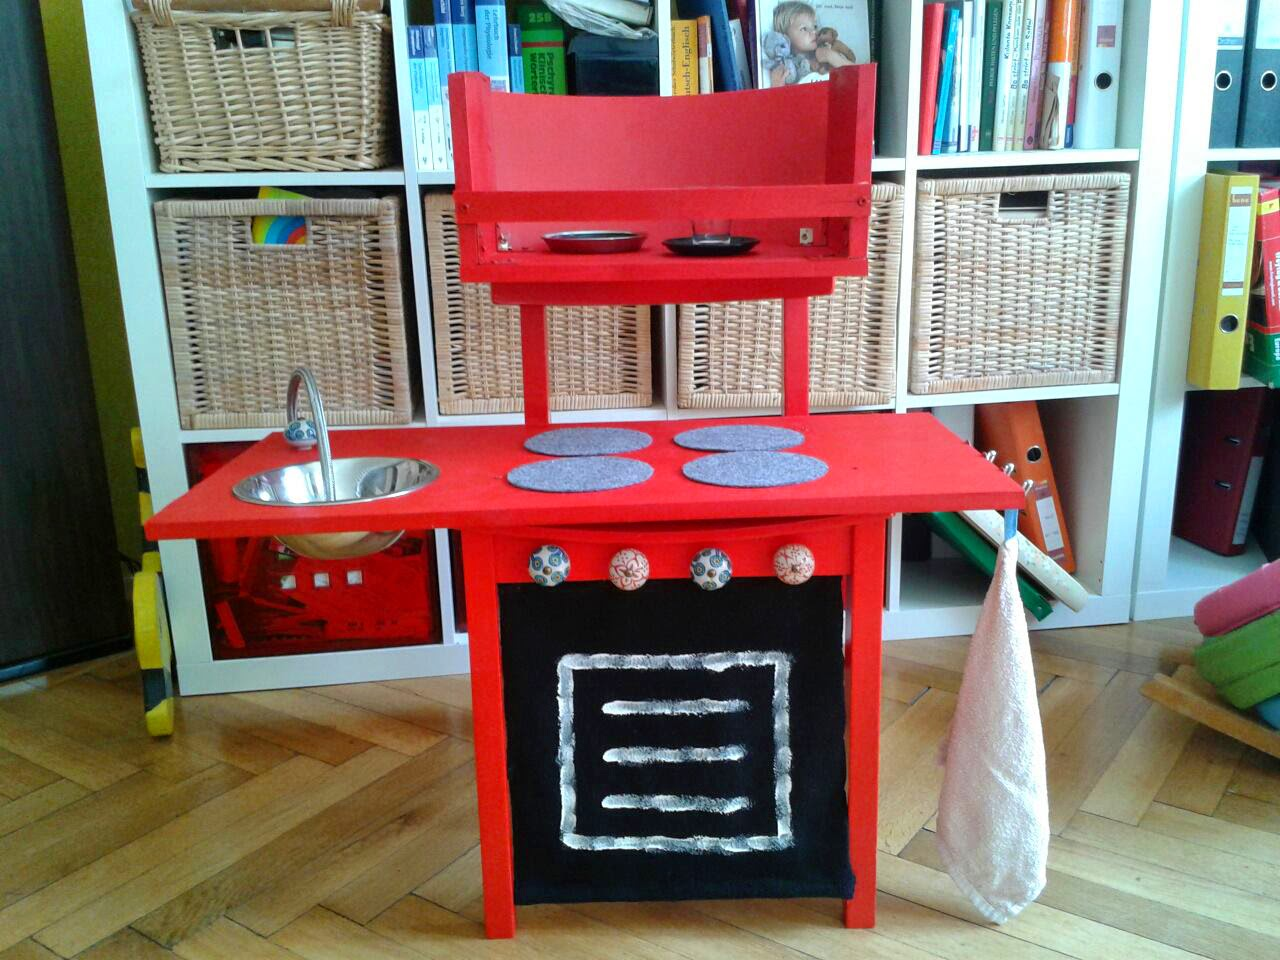 http://blog.donkrawallo.at/2014/08/little-smutjes-upcycling-pantry.html